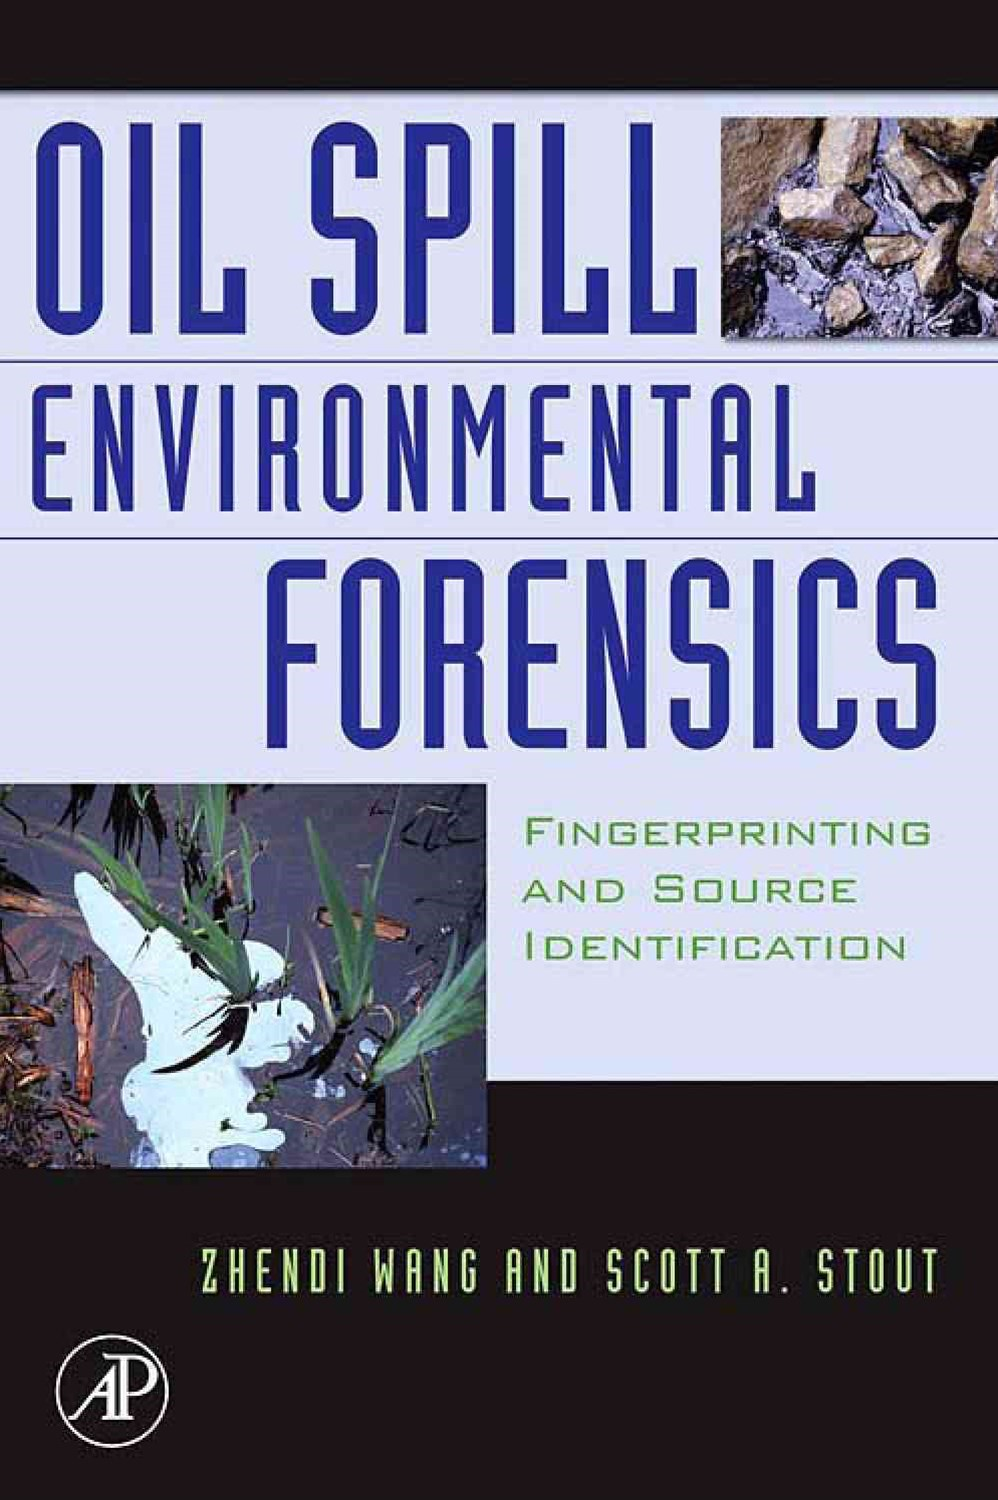 Oil Spill Environmental Forensics